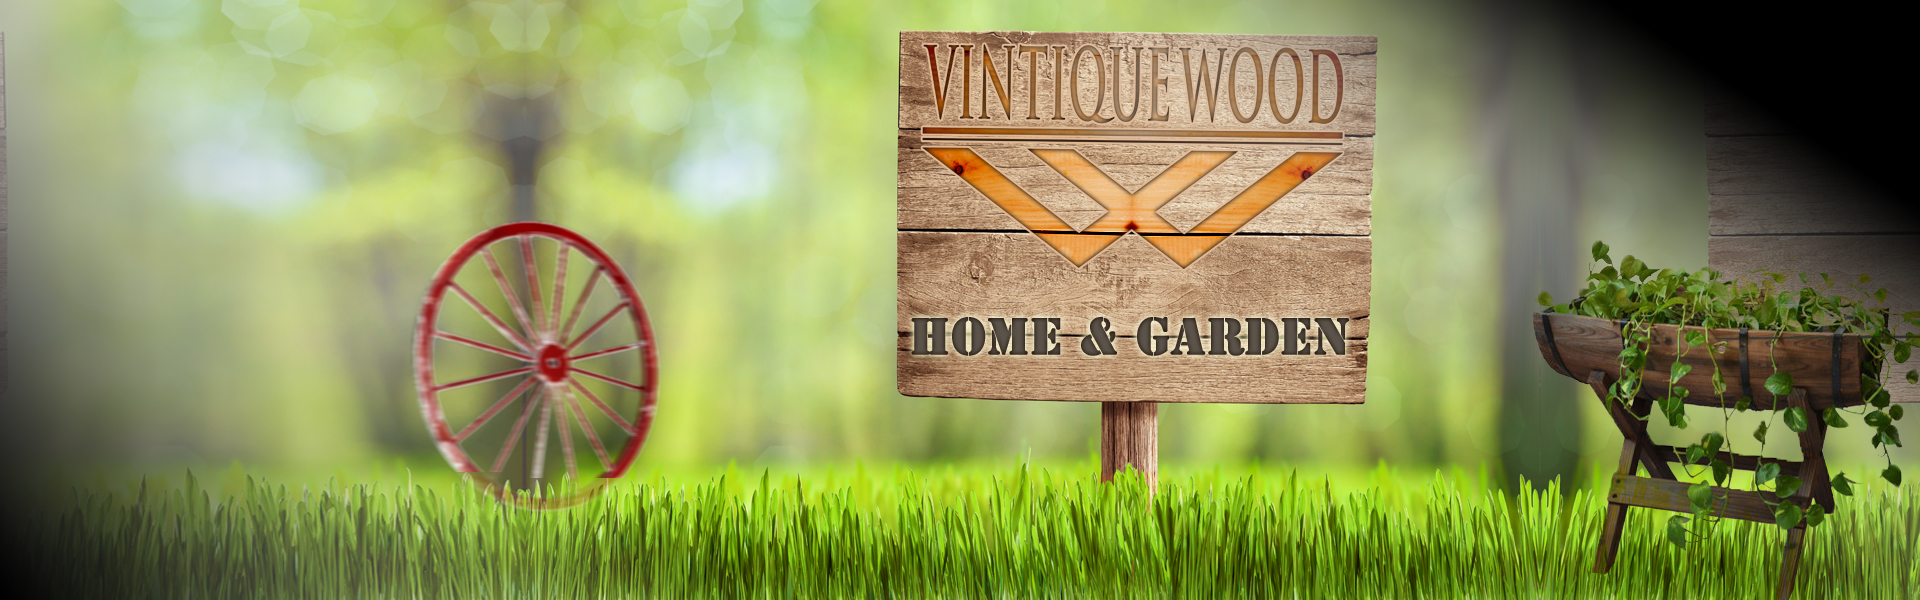 vintique-wood-brand-banner-copy.jpg